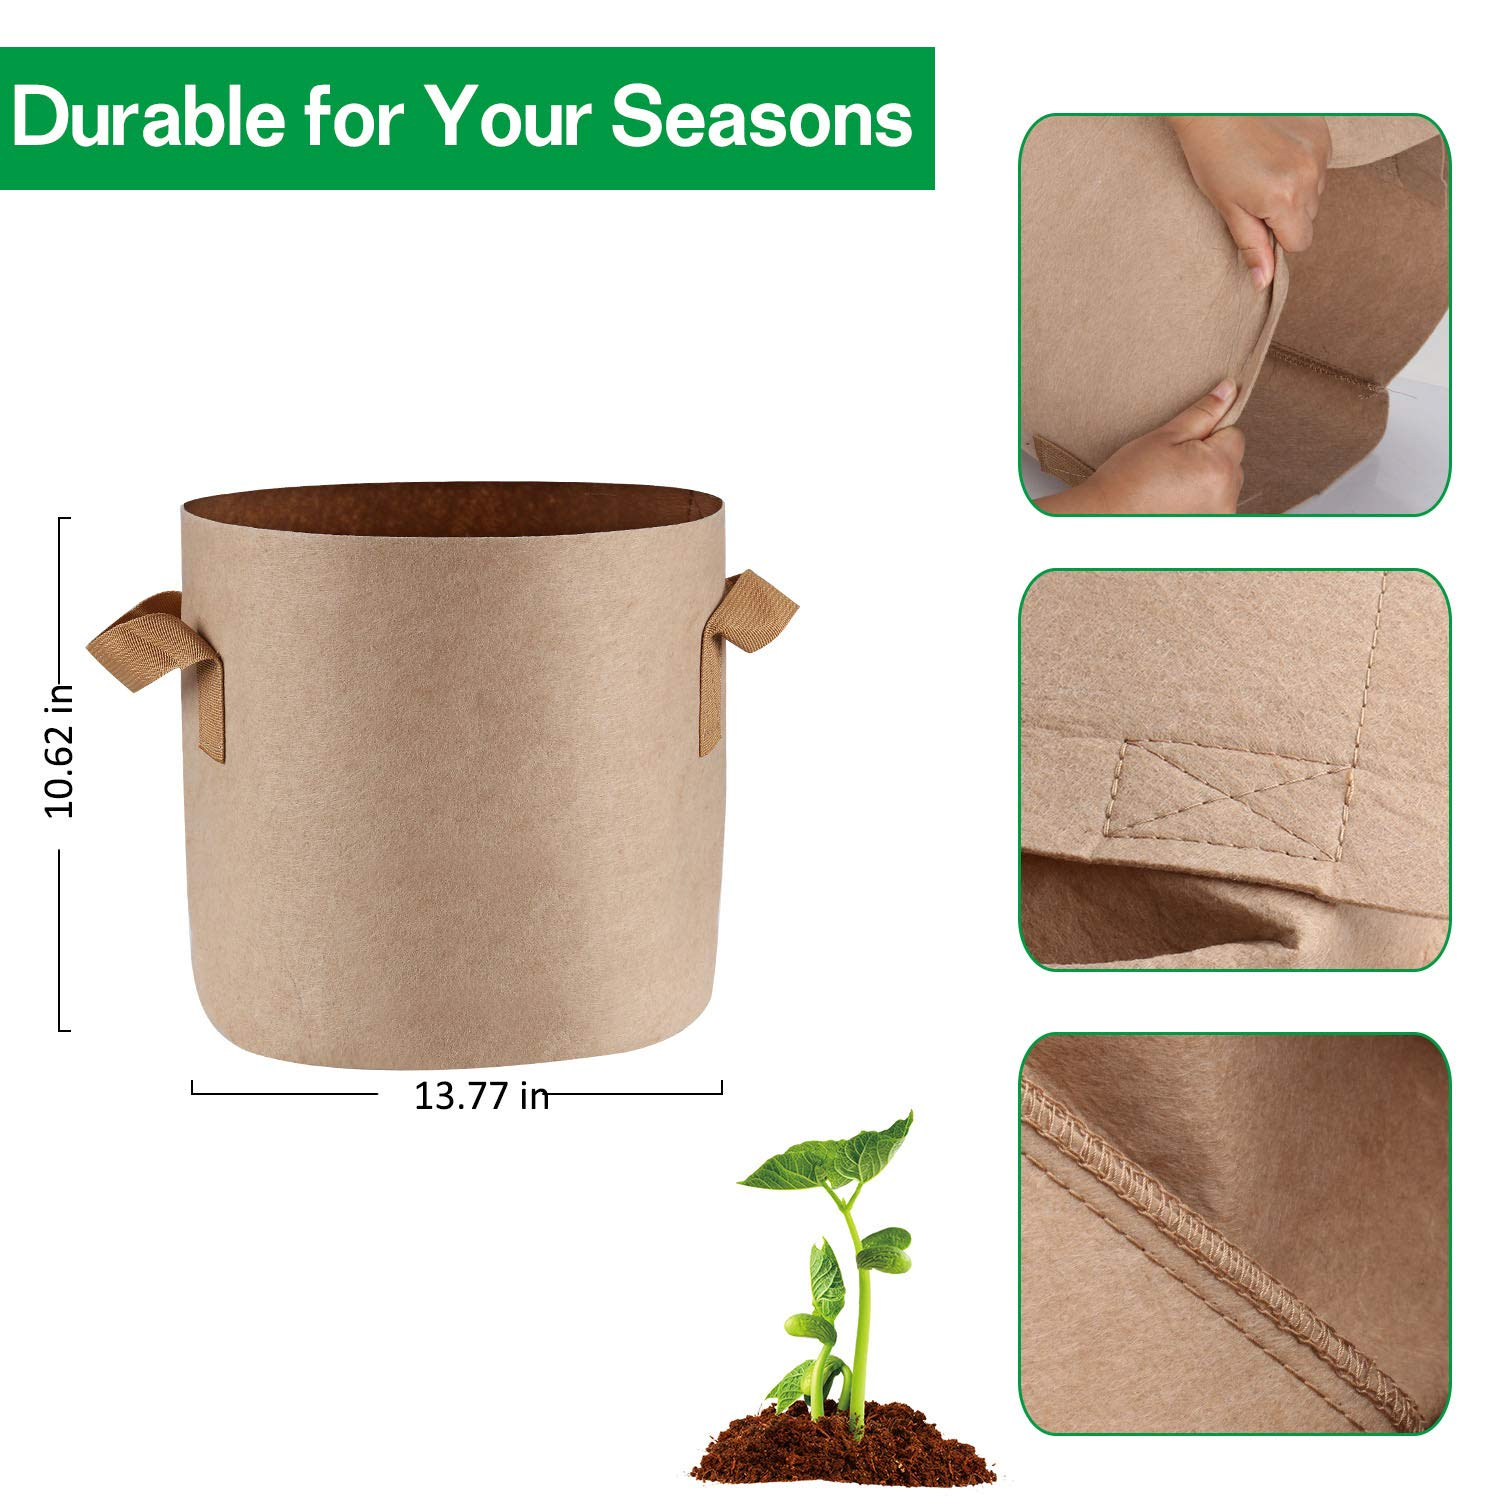 Fabric Planter Pots for Beets Strawberries Cucumbers Anleolife 10-Pack 7 Gallon Potato Grow Bags Tan